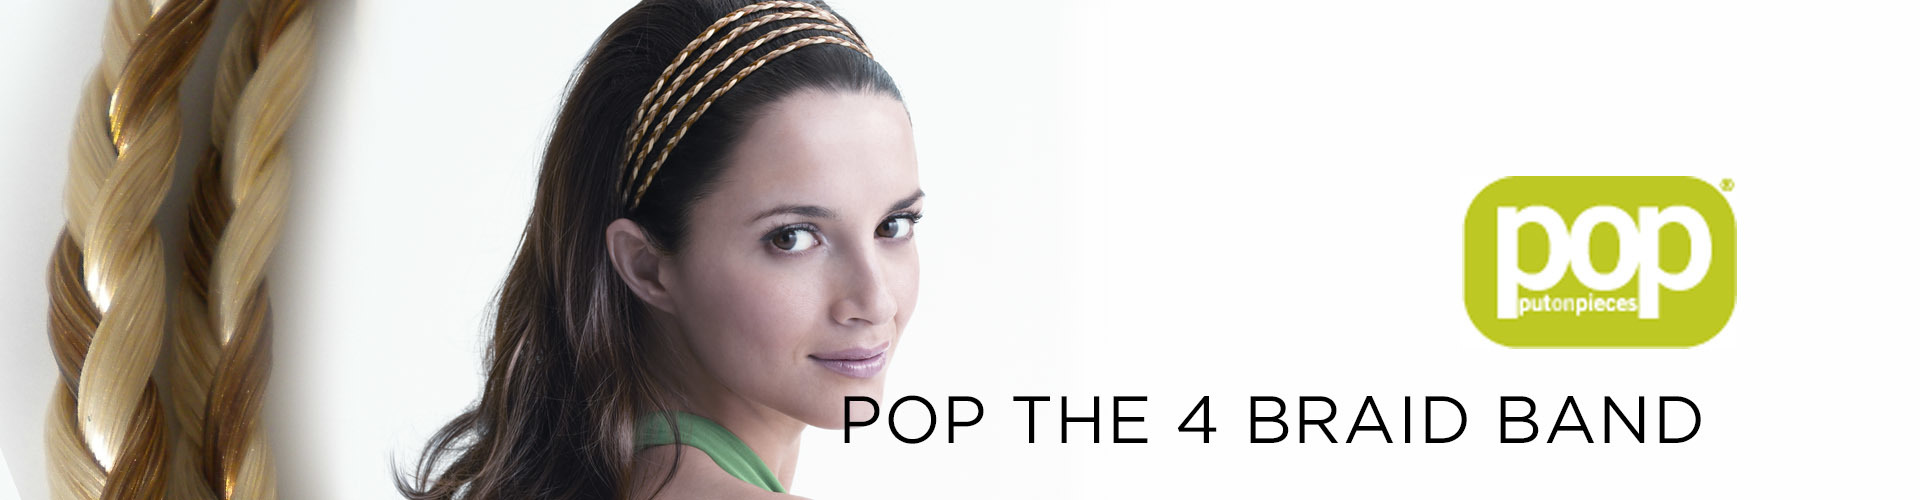 POP The 4 Braid Band (© Great Lengths)